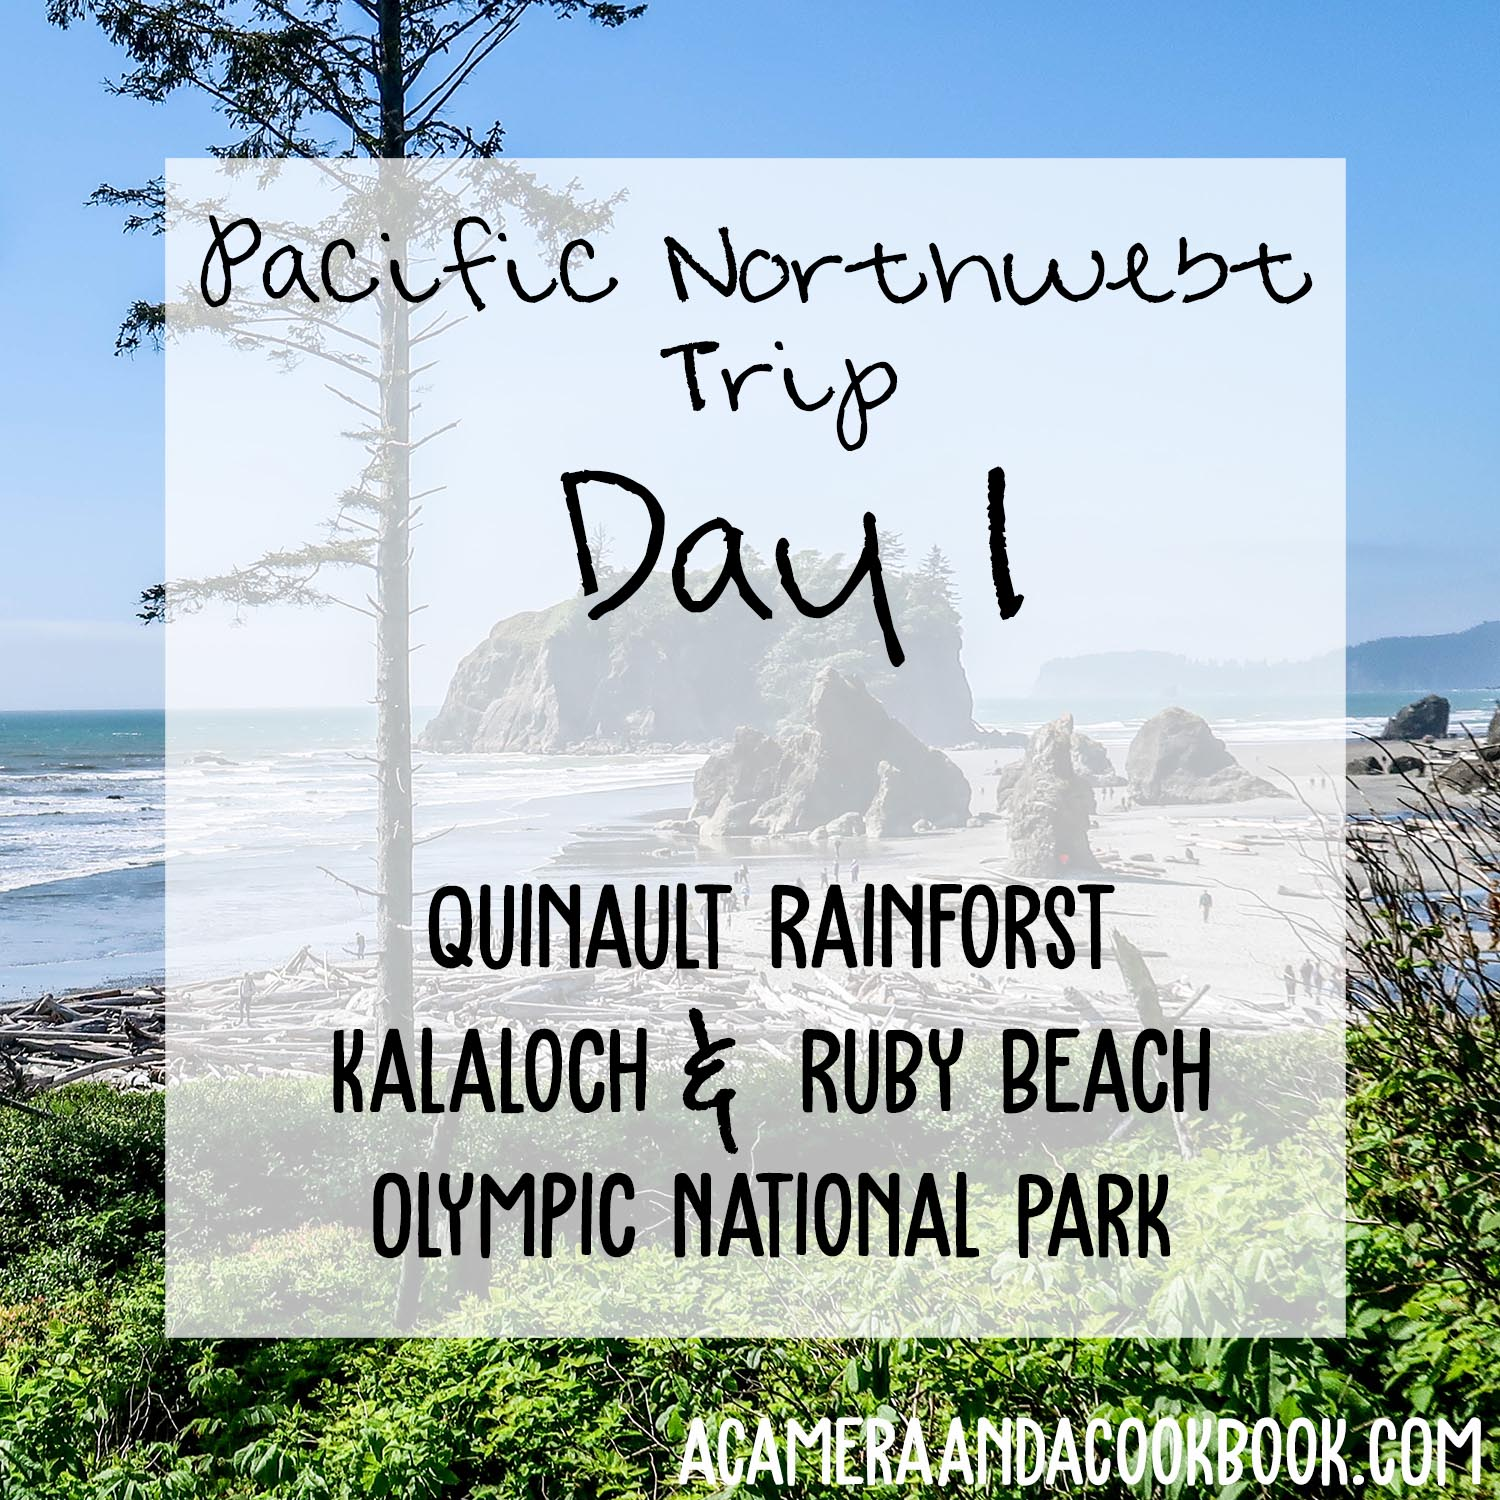 Pacific NW Trip: Day 1